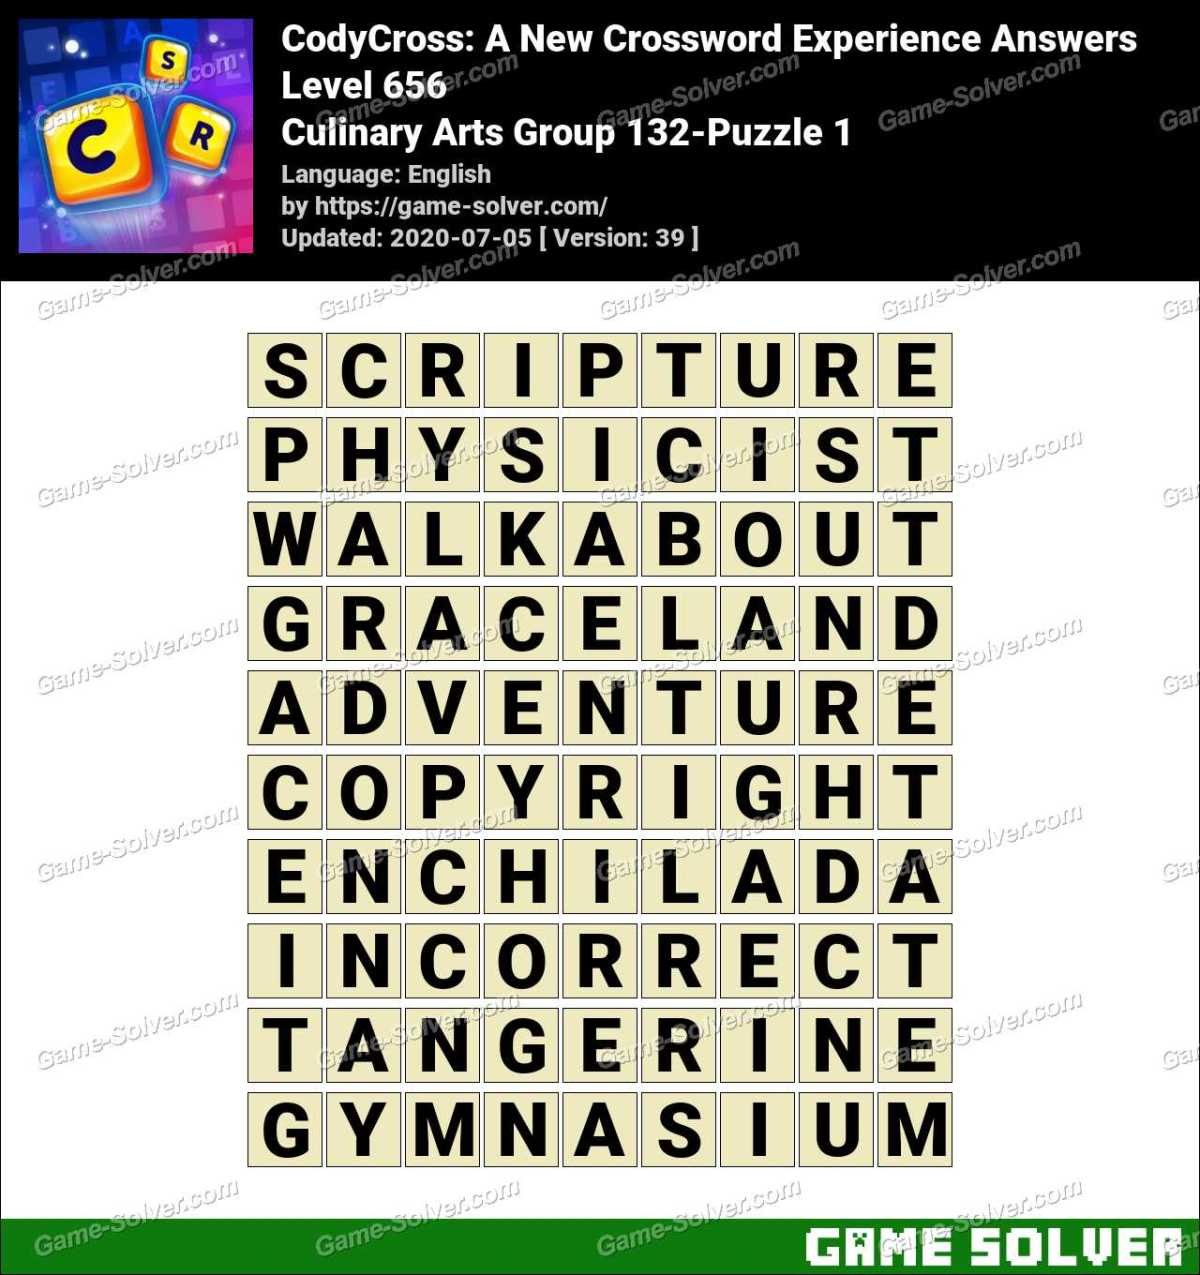 CodyCross Culinary Arts Group 132-Puzzle 1 Answers